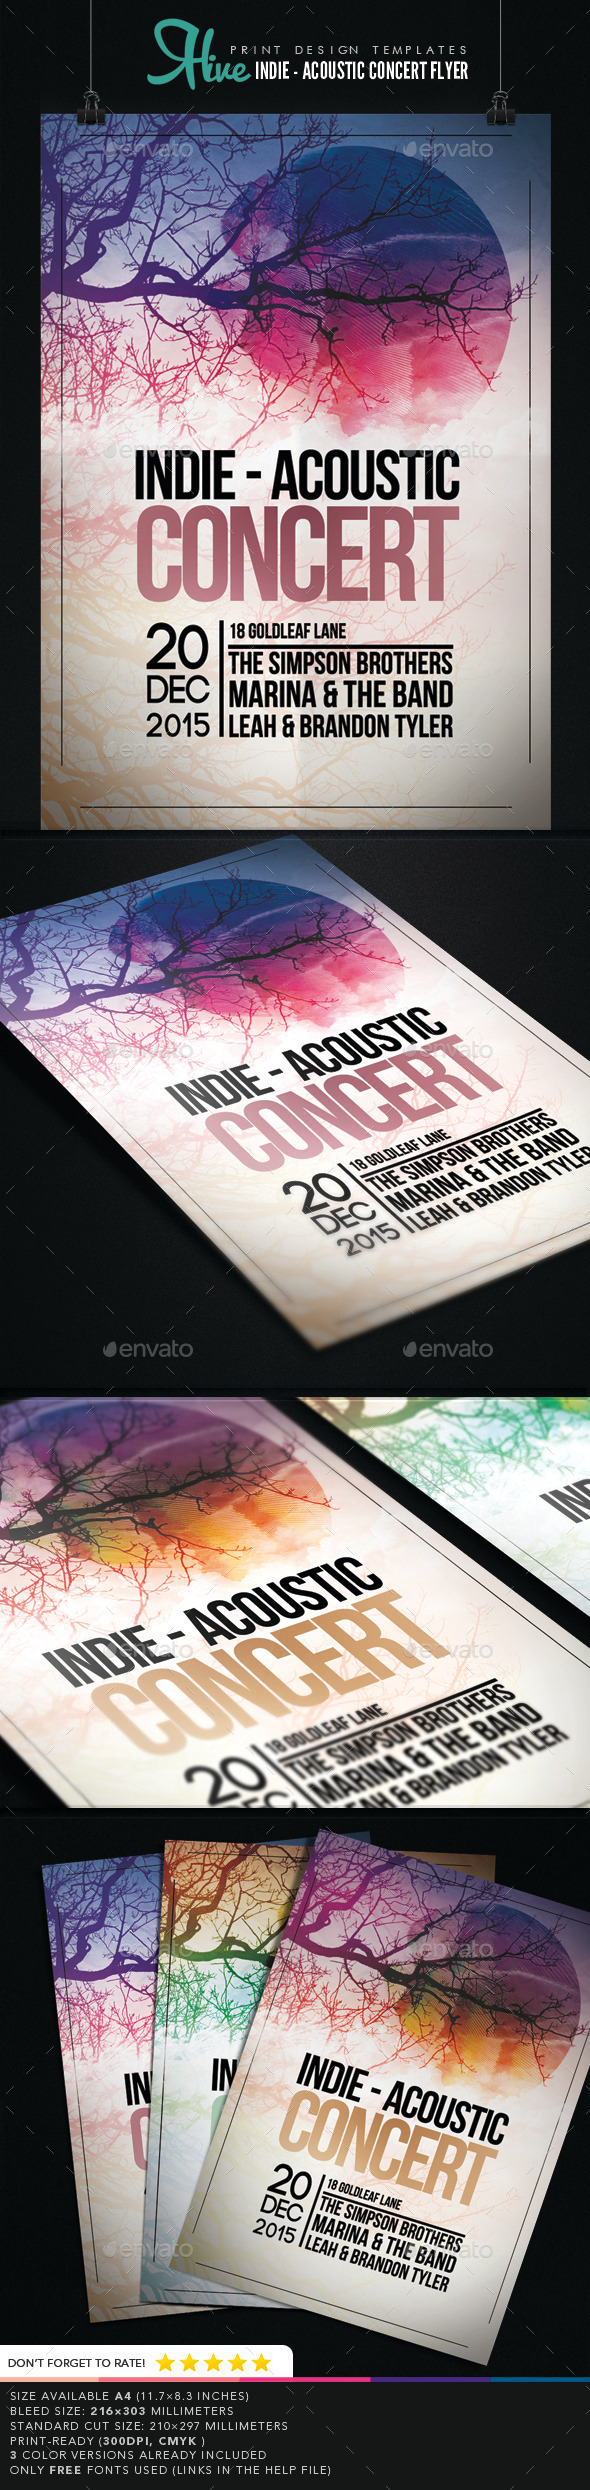 GraphicRiver Indie Acoustic Concert Flyer 9145966